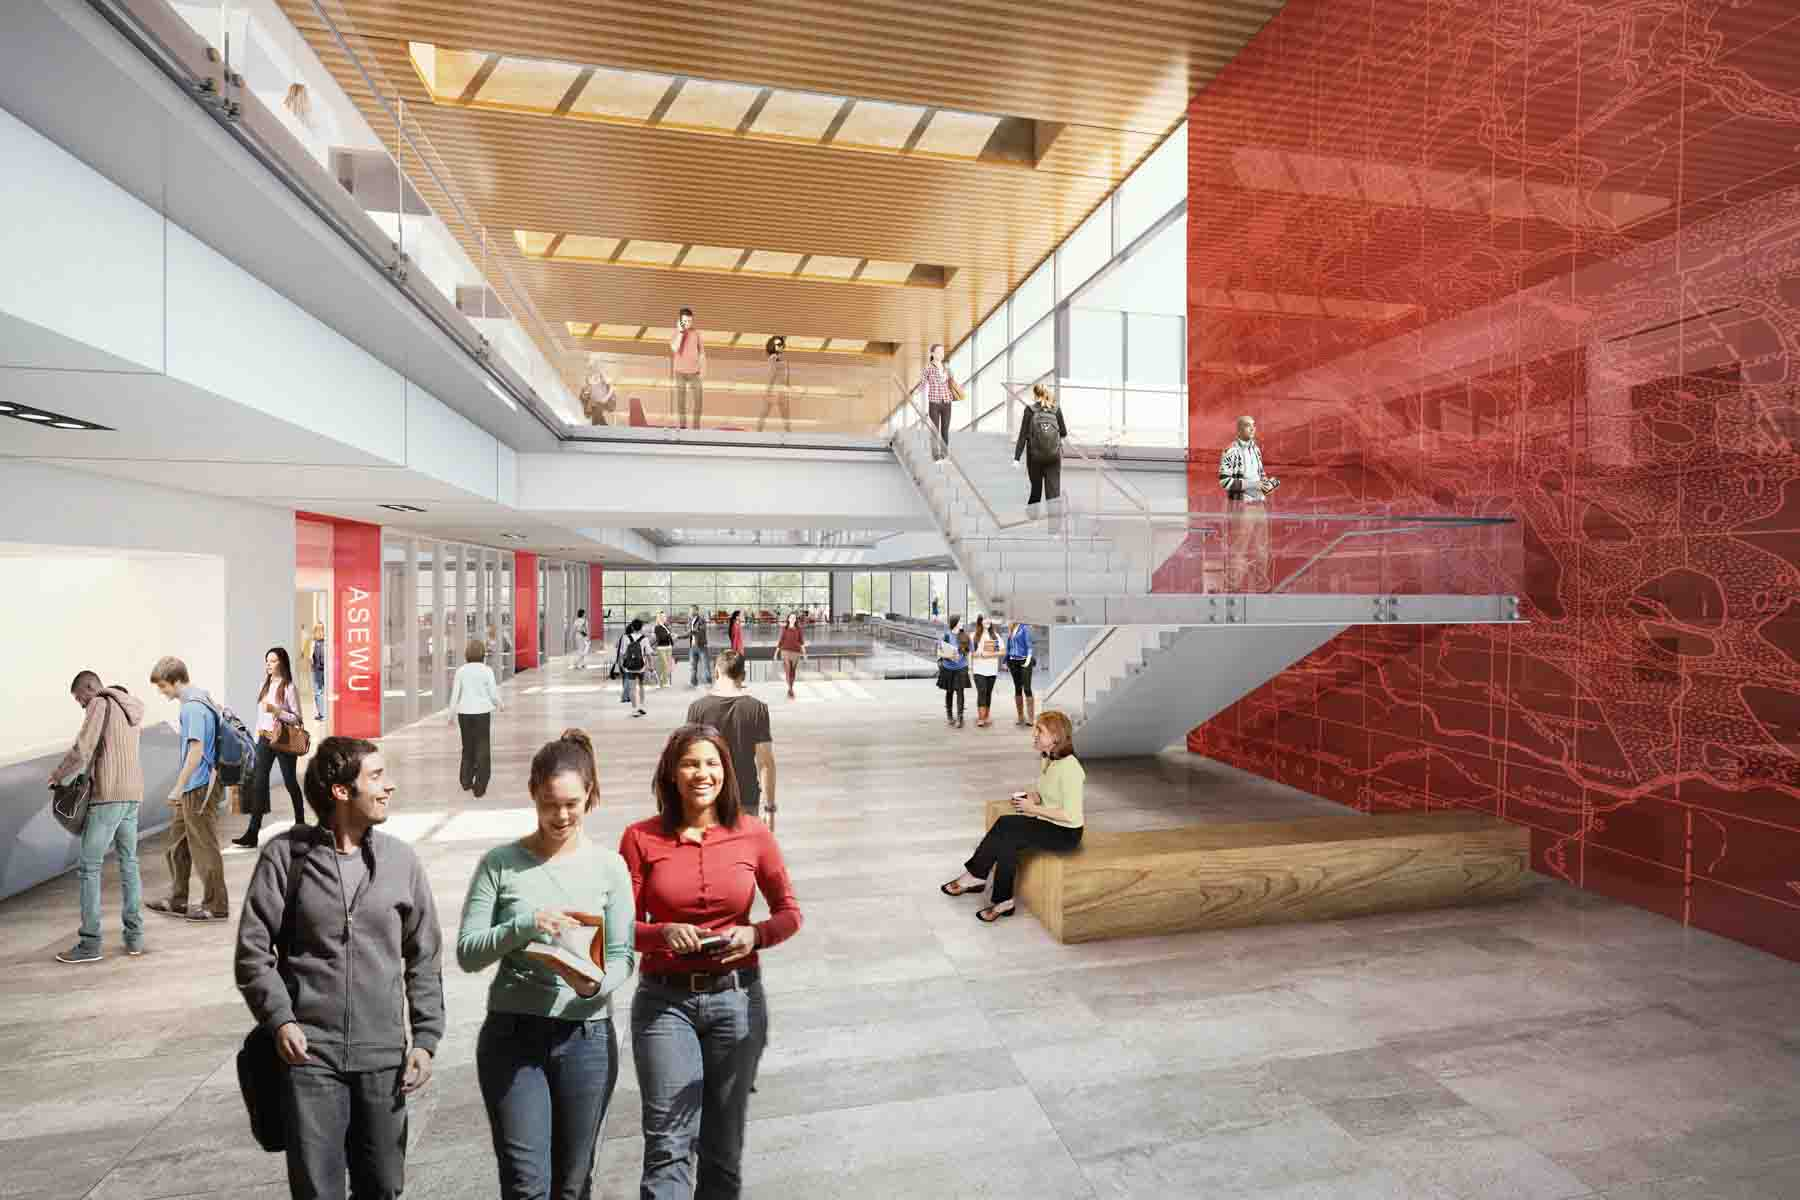 Eastern Washington University <br/> Pence Union Building Renovation